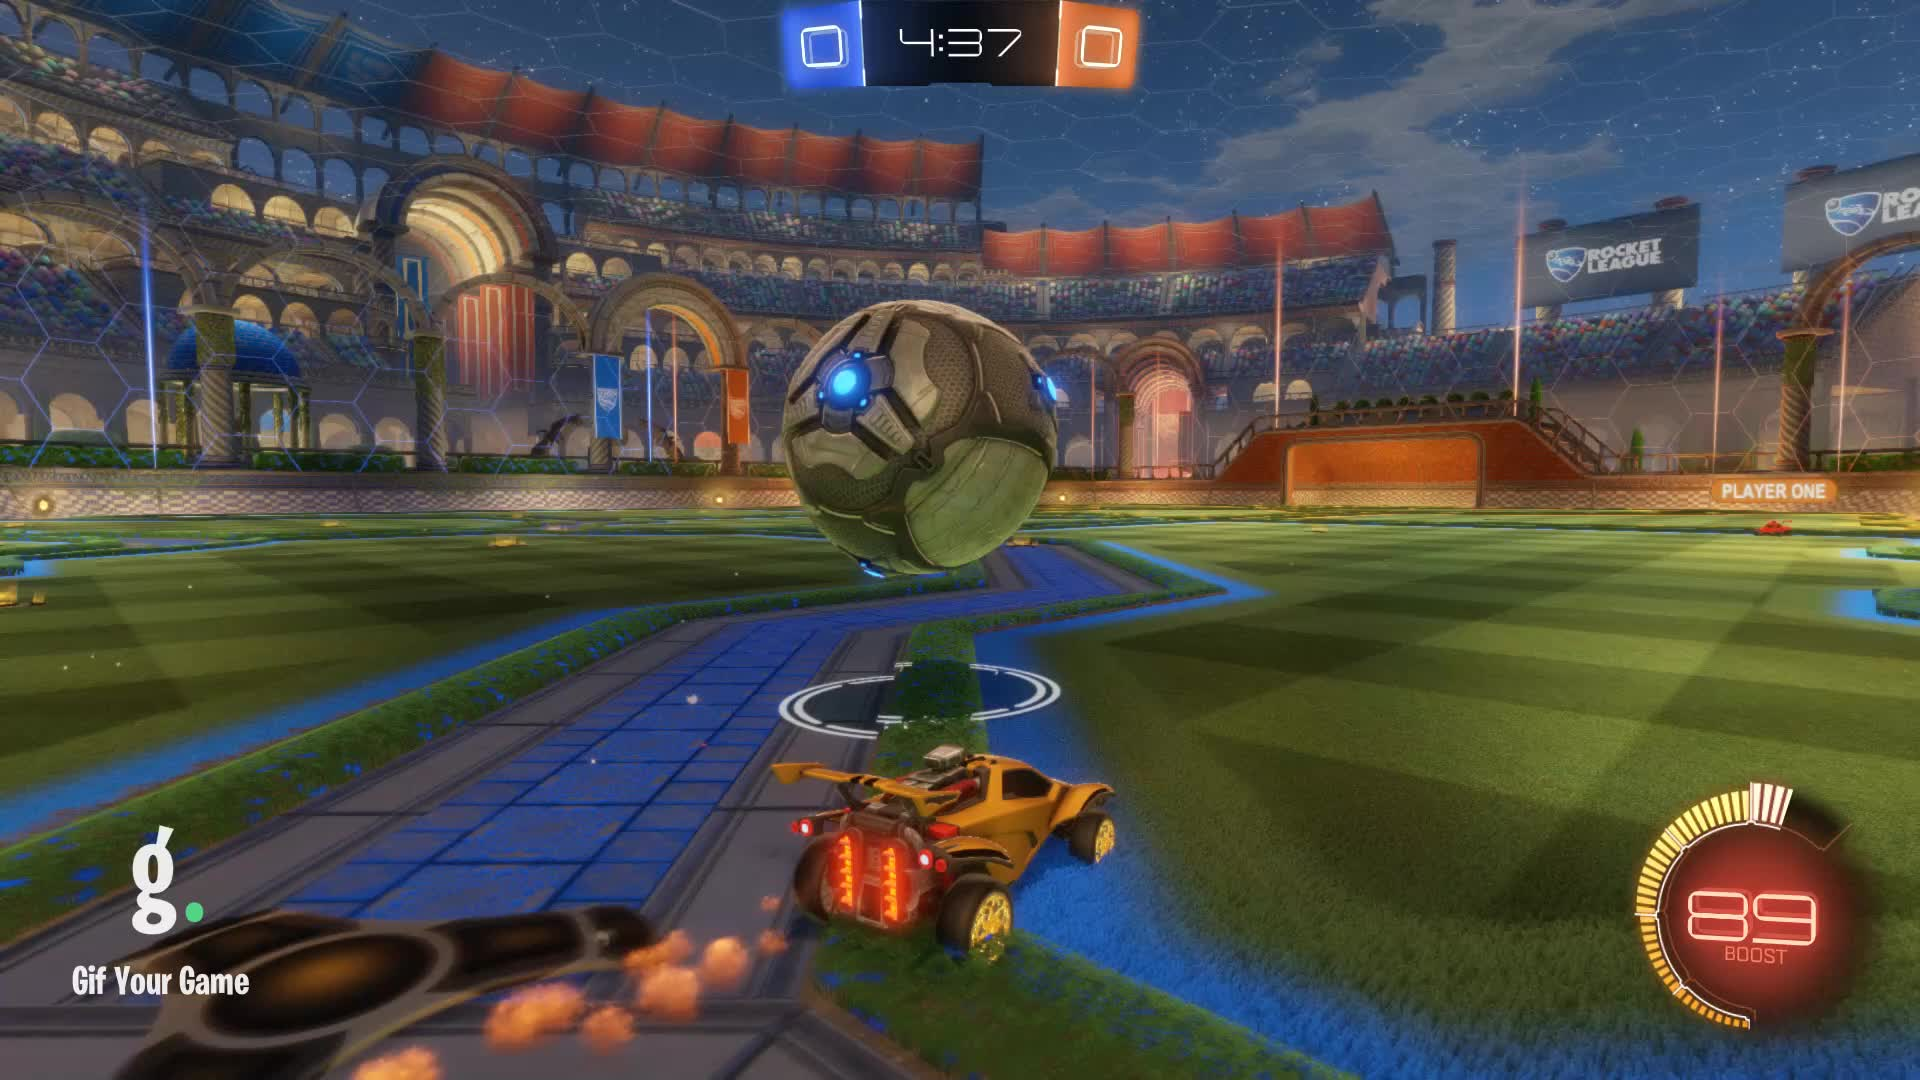 Gif Your Game, GifYourGame, Goal, Rocket League, RocketLeague, datboi, Goal 1: datboi GIFs